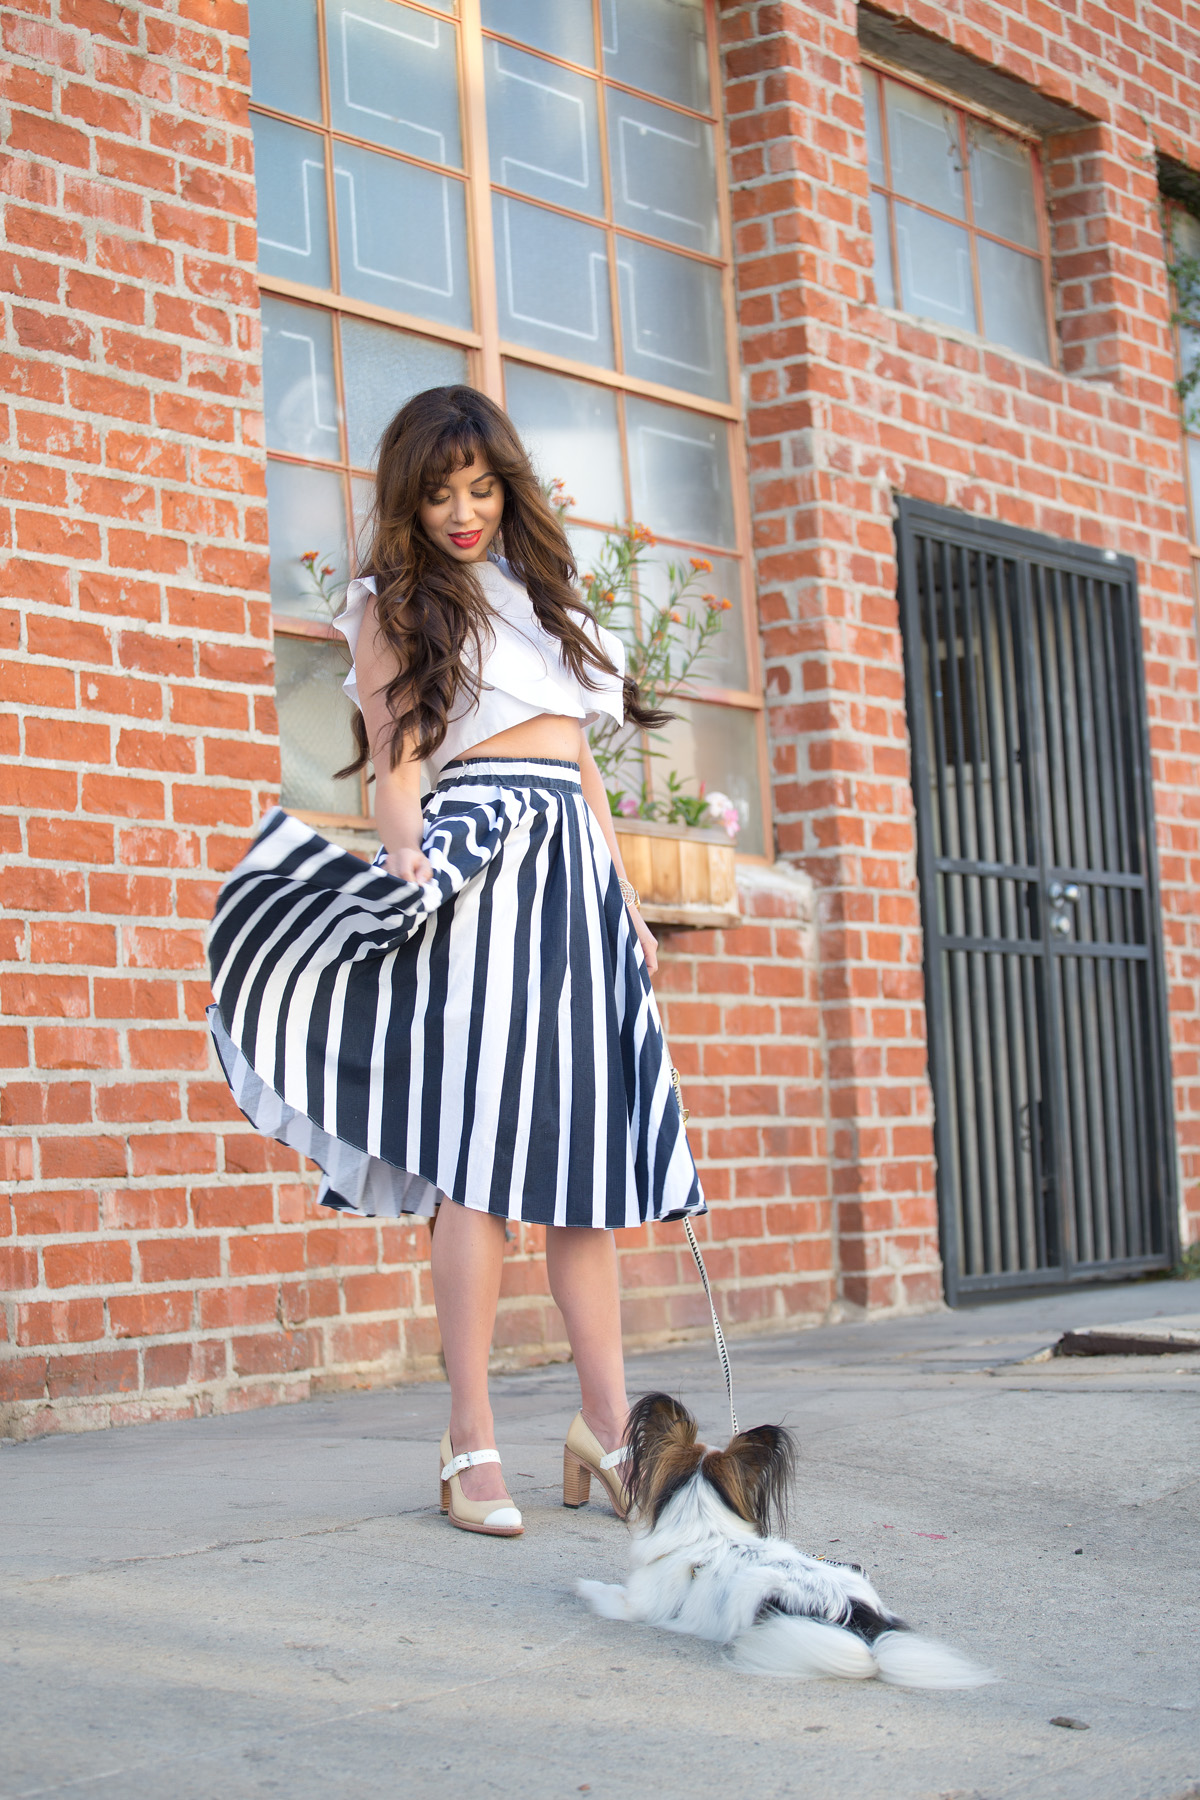 AS9A3356_LR - Beaming From the Inside Out by popular LA style blogger The LA Survival Guide